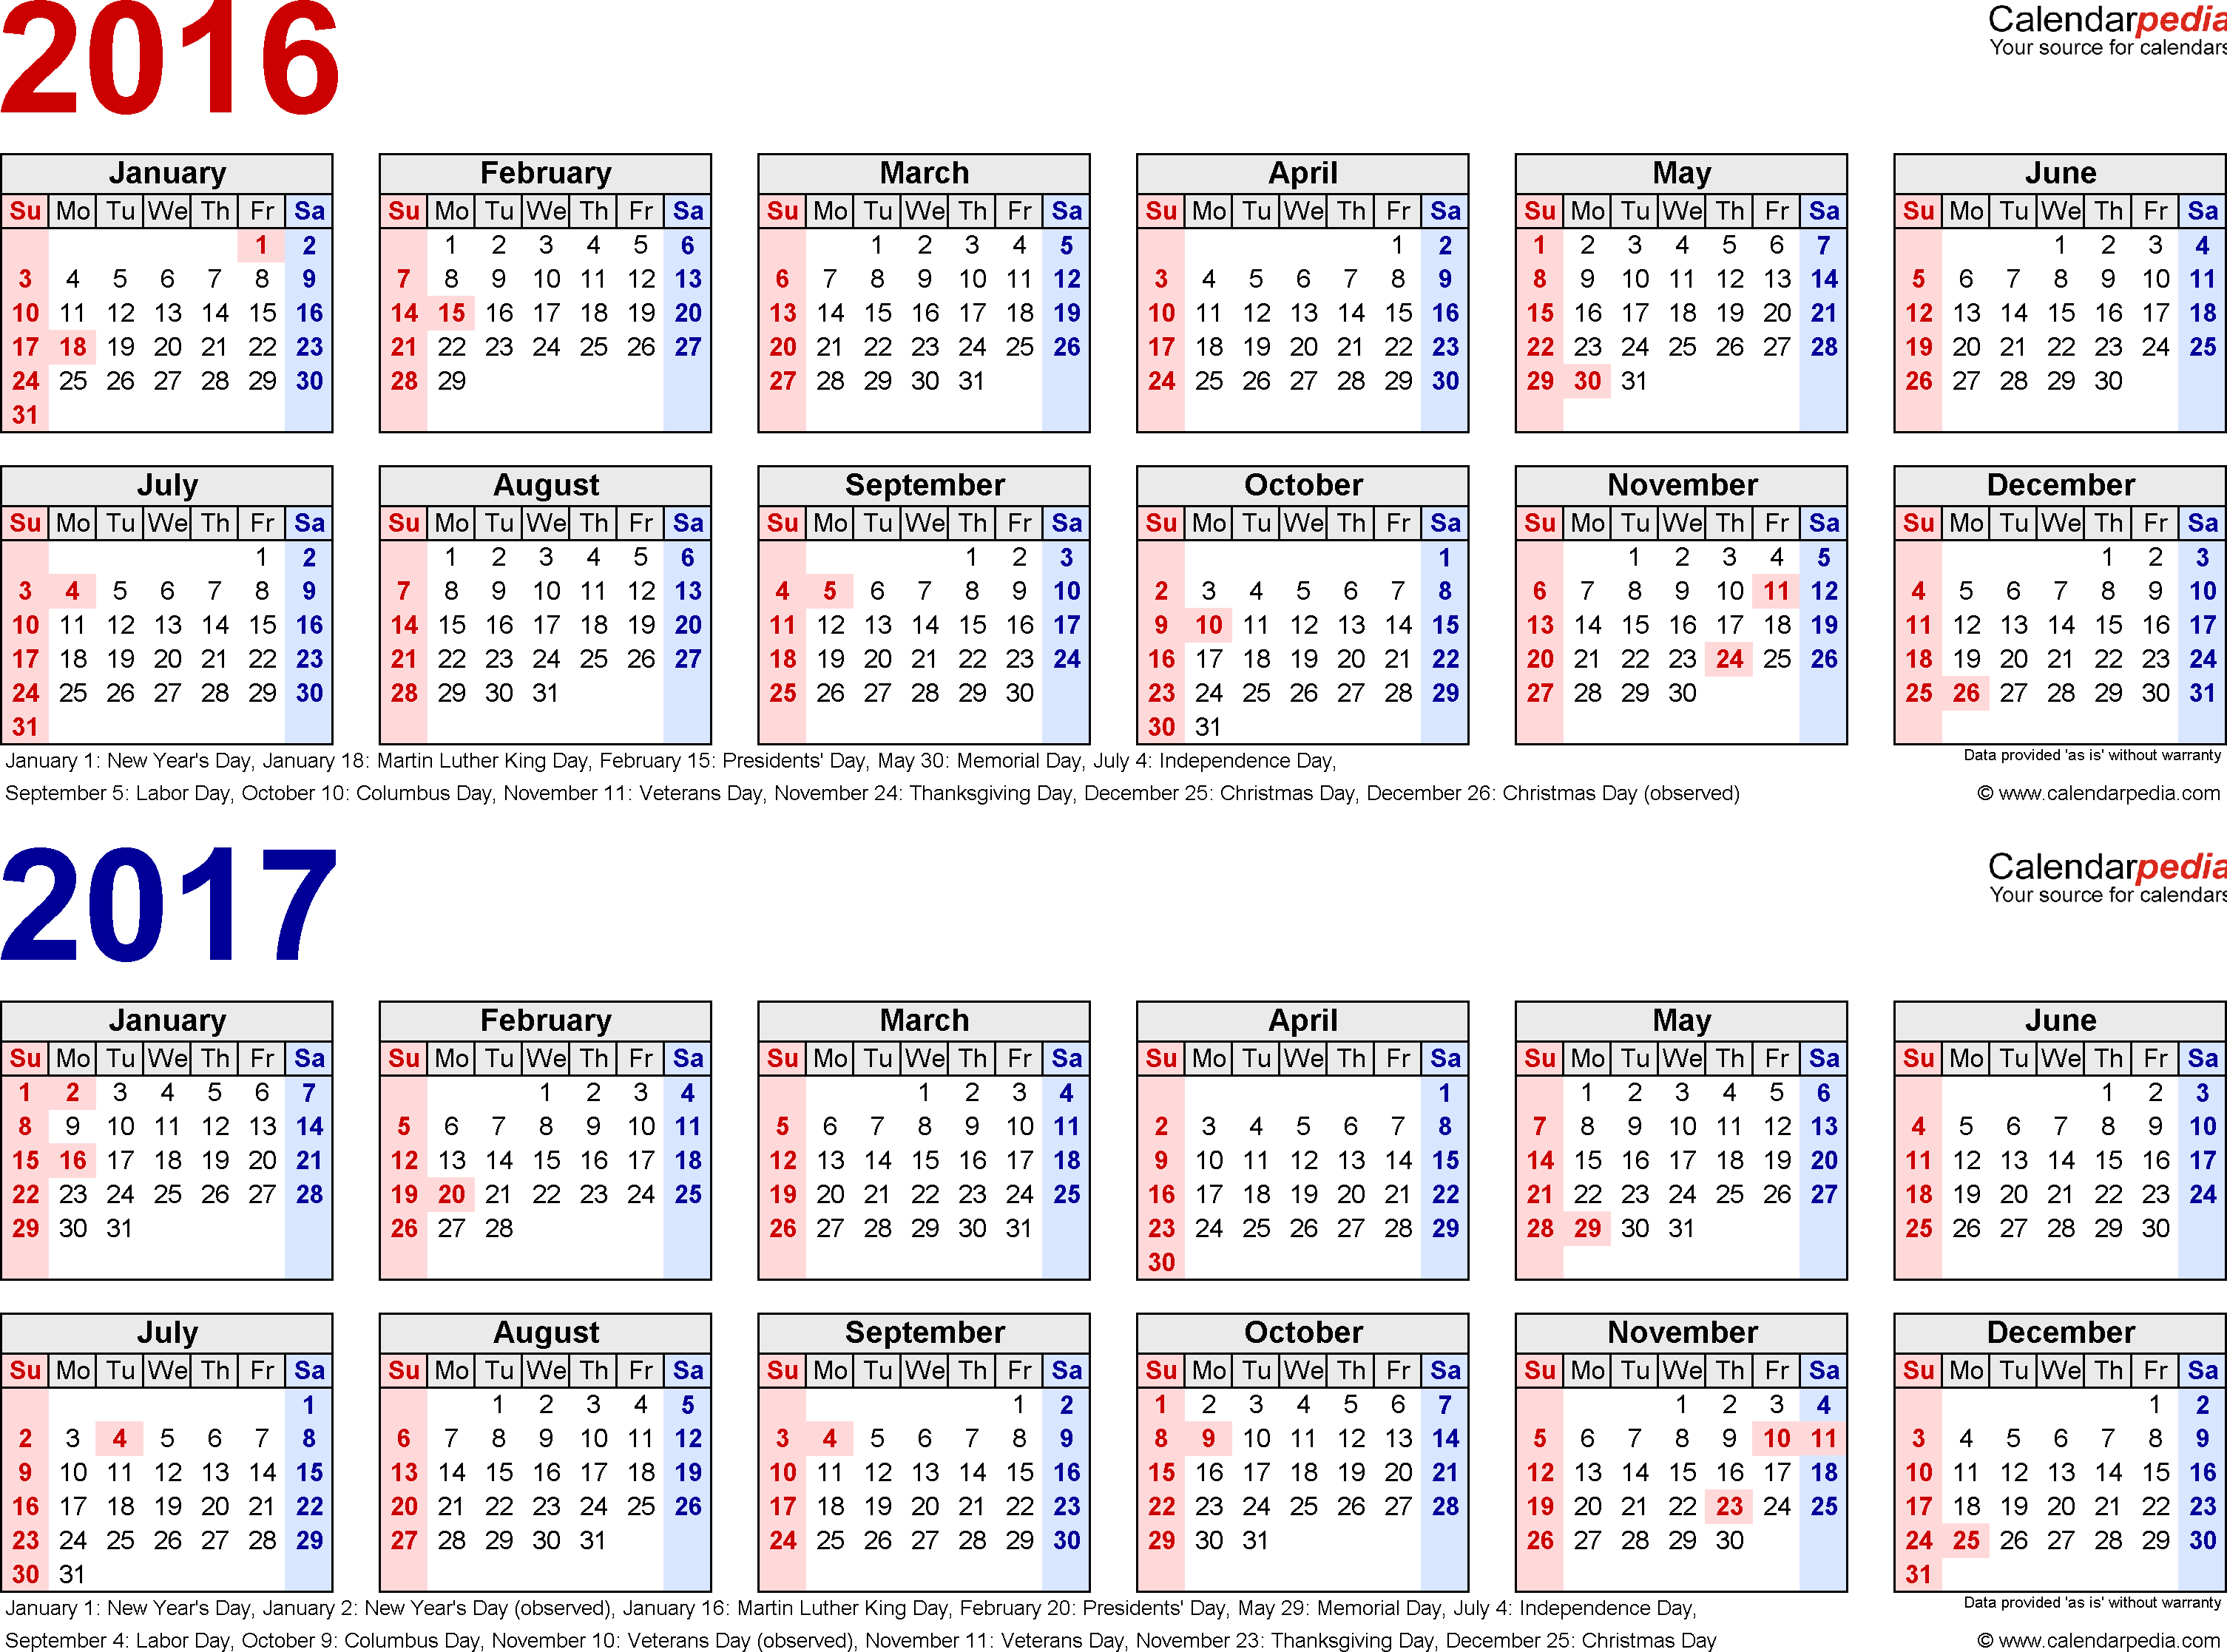 Template 1: Excel template for two year calendar 2016/2017 (landscape orientation, 1 page, in red and blue)